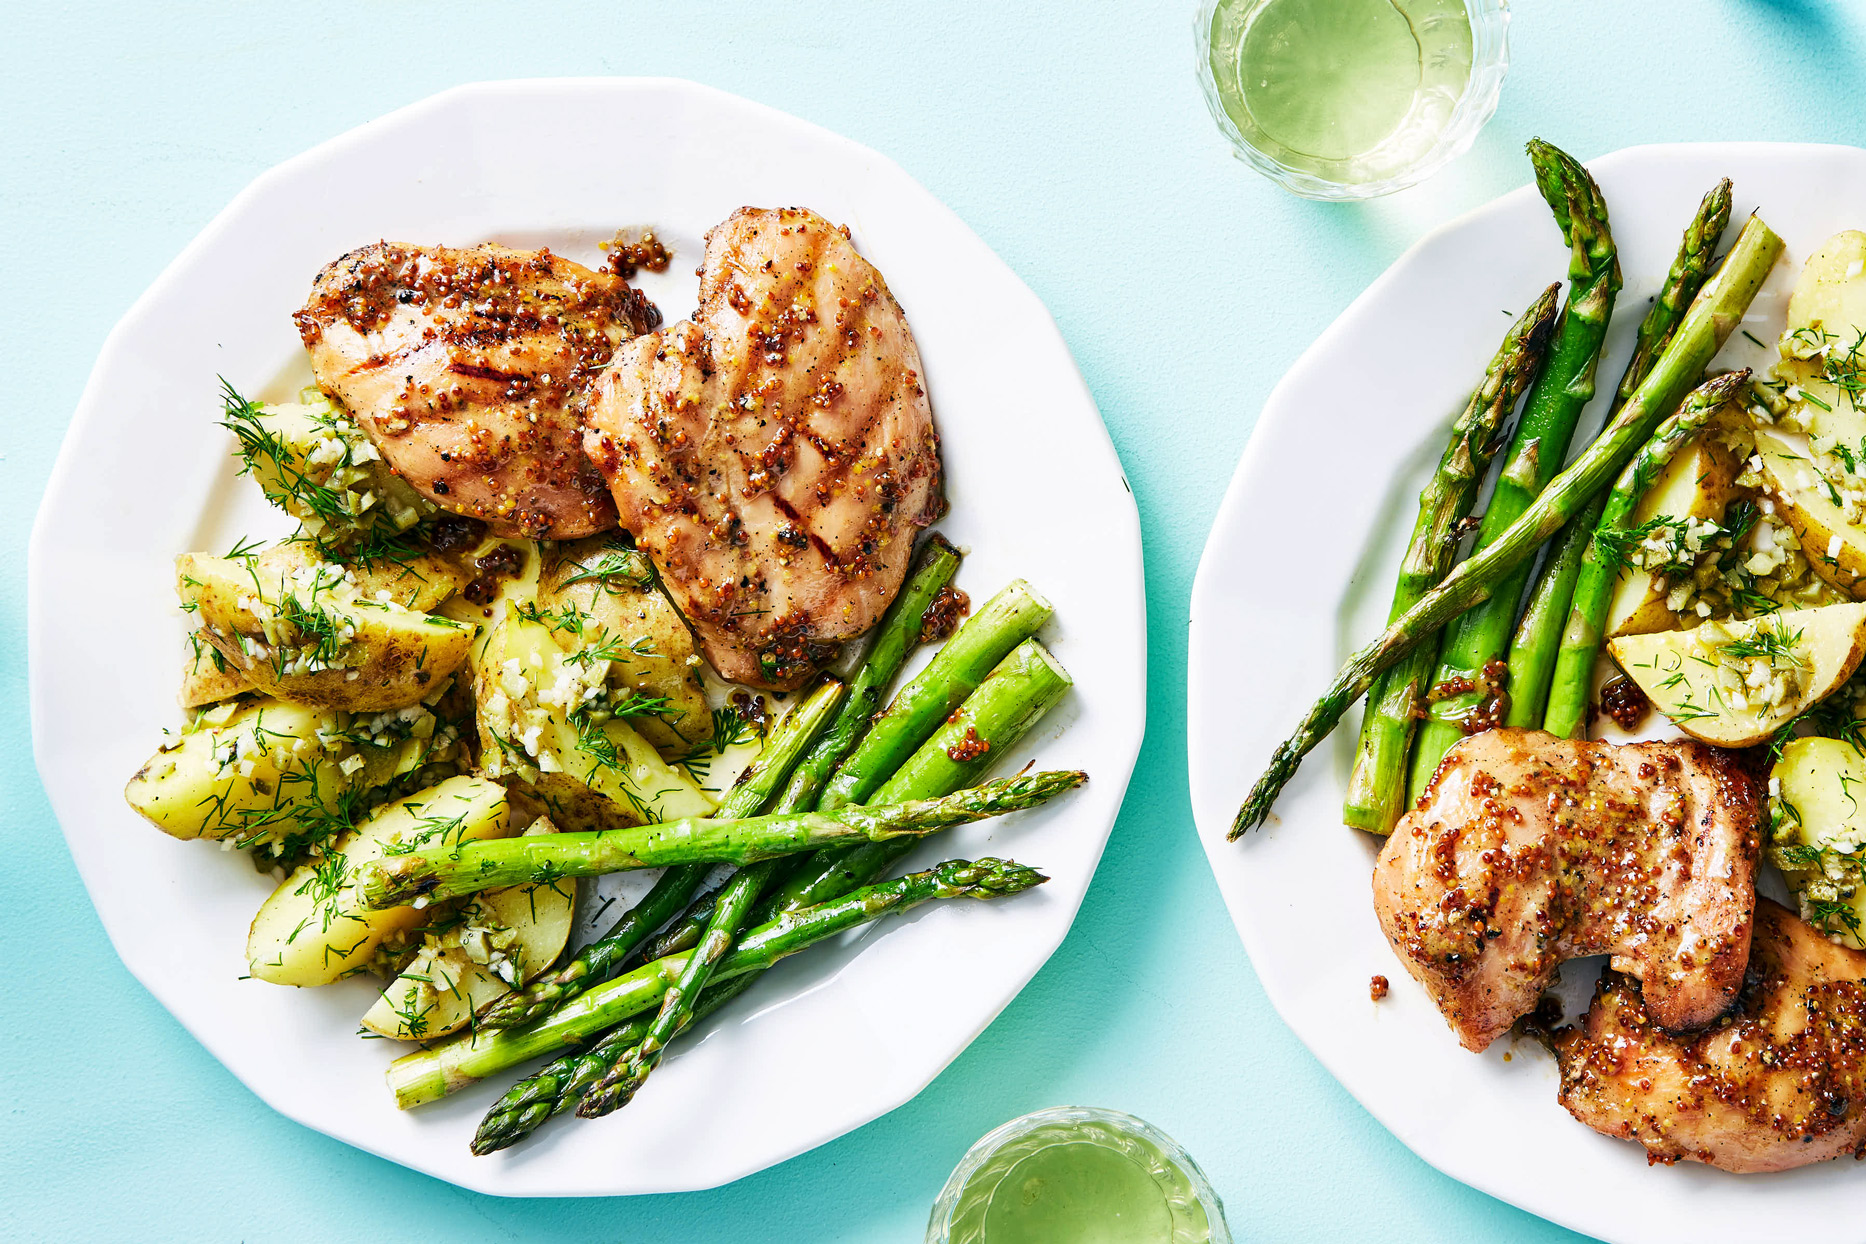 martha and marley spoon honey mustard chicken with potato salad and asparagus